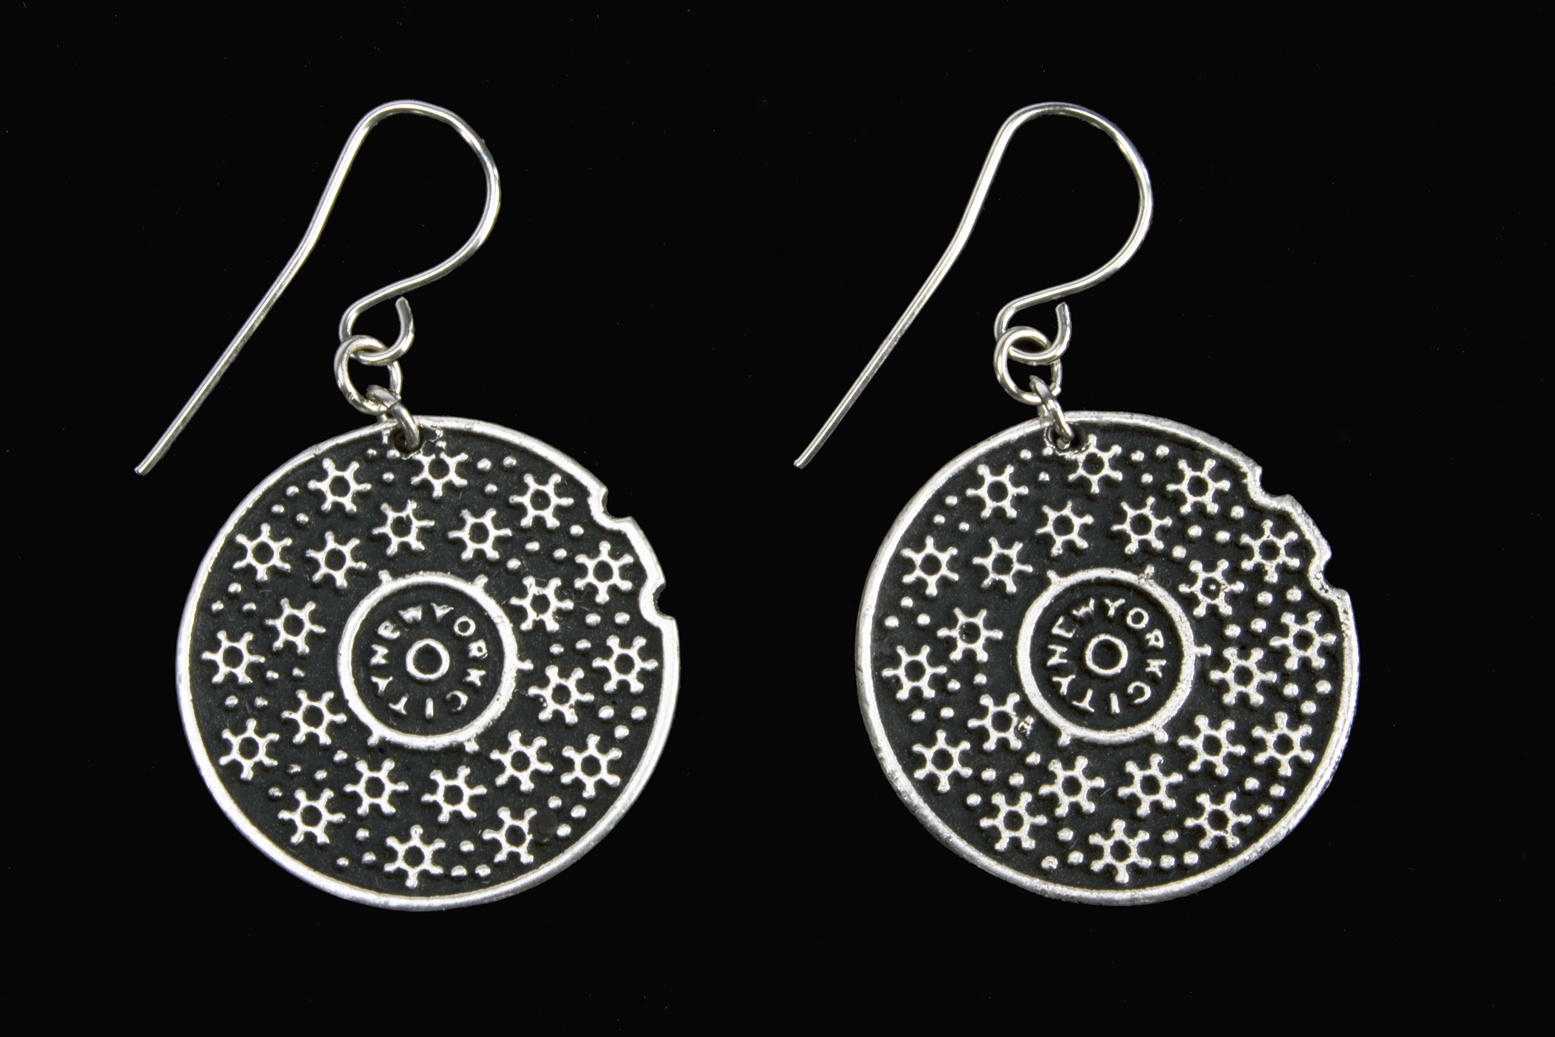 manhole cover_silver earring A.jpg